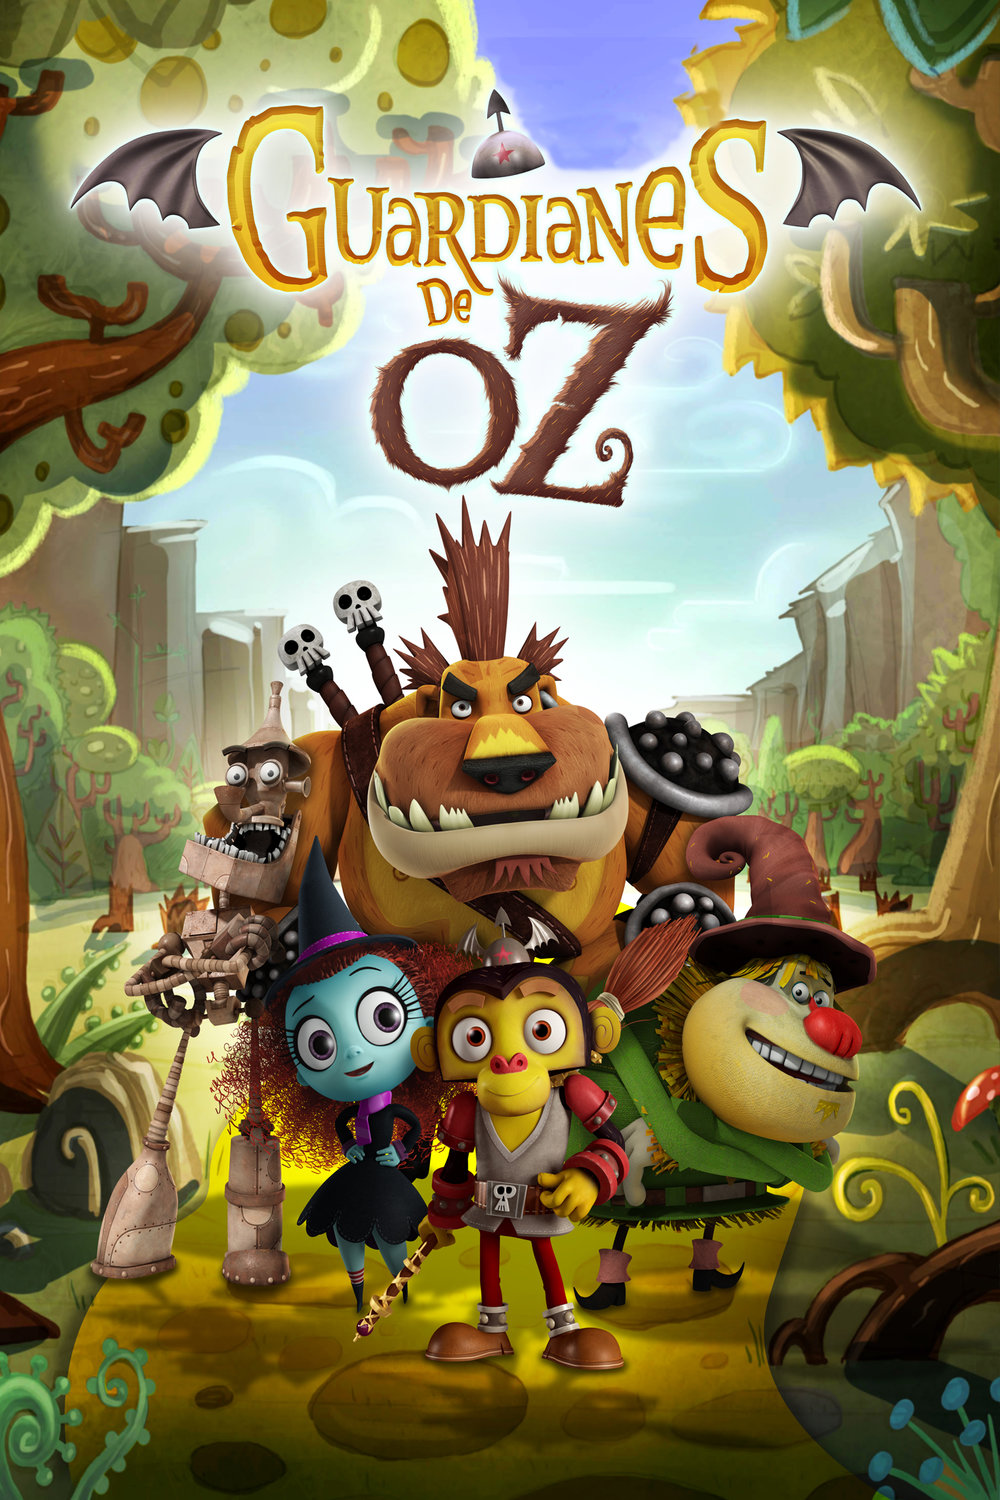 Guardianes de Oz - Poster.jpg